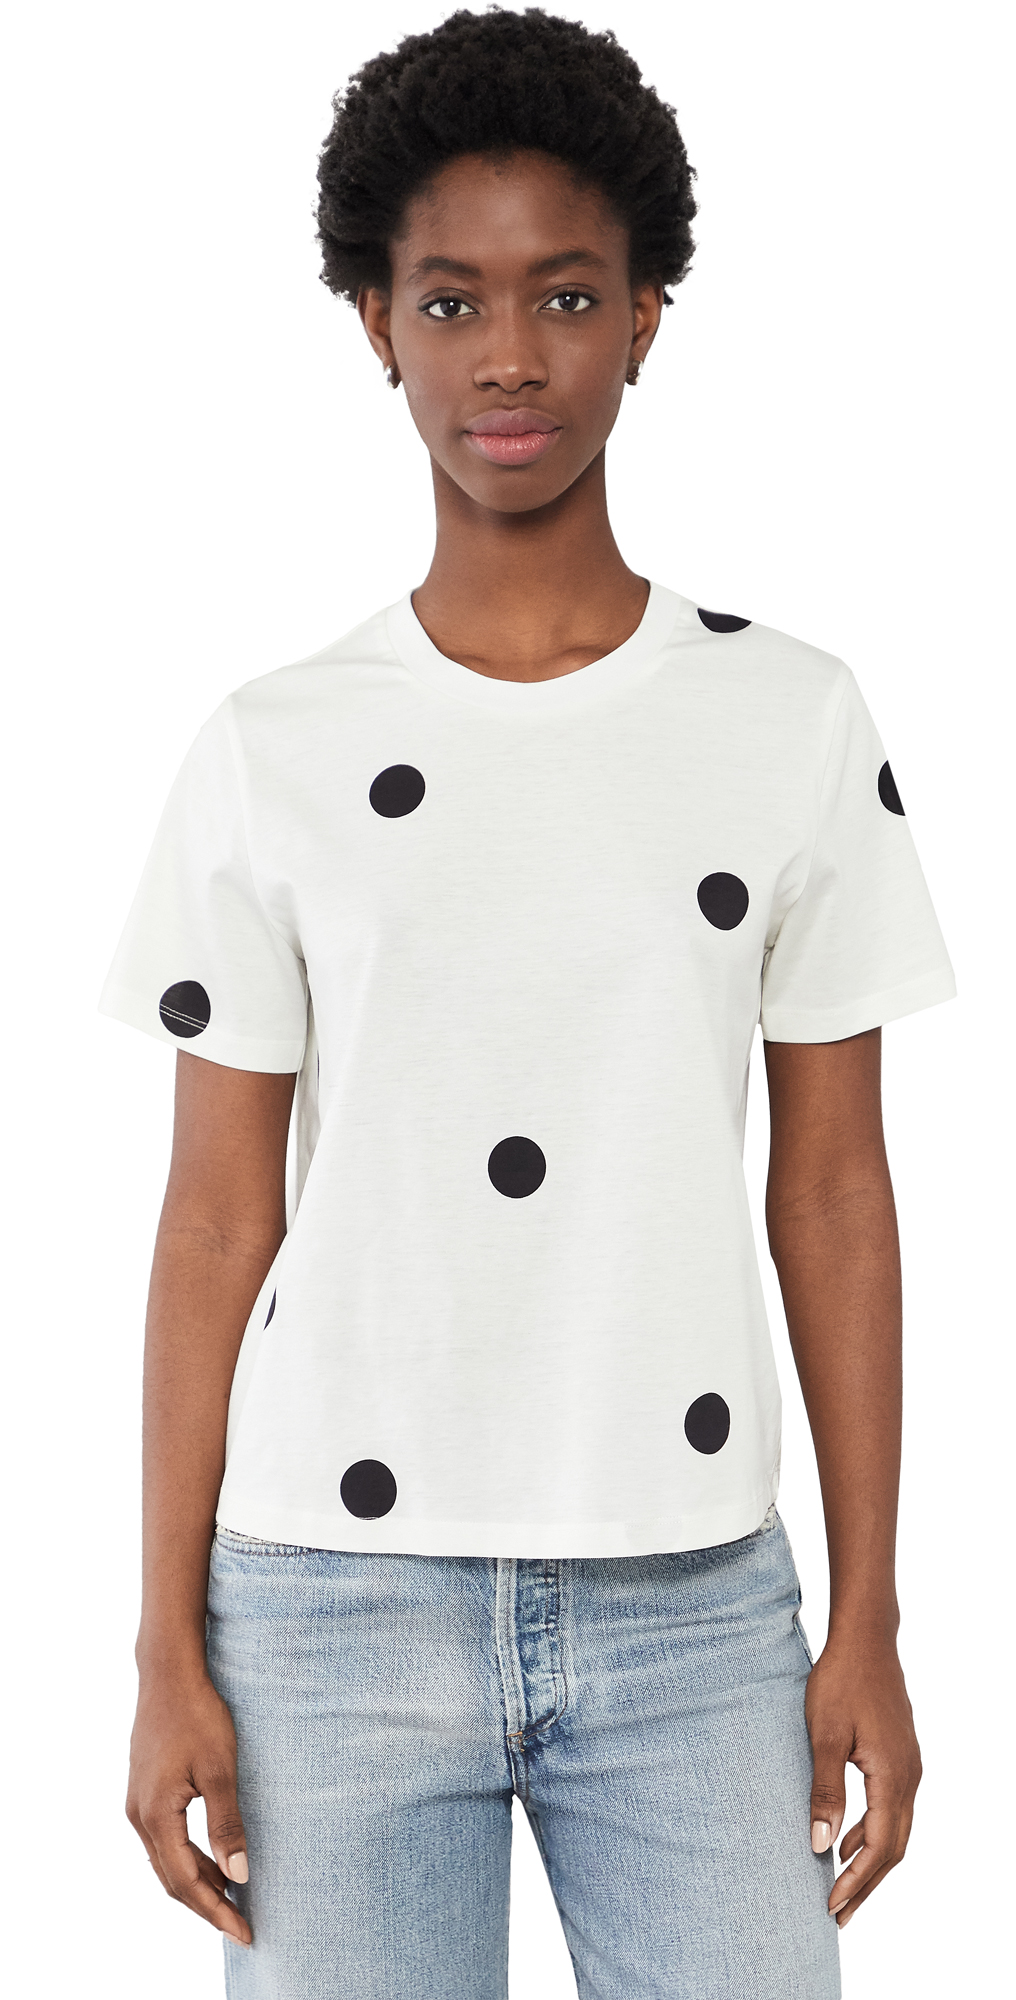 3.1 Phillip Lim Dotted Print T-Shirt